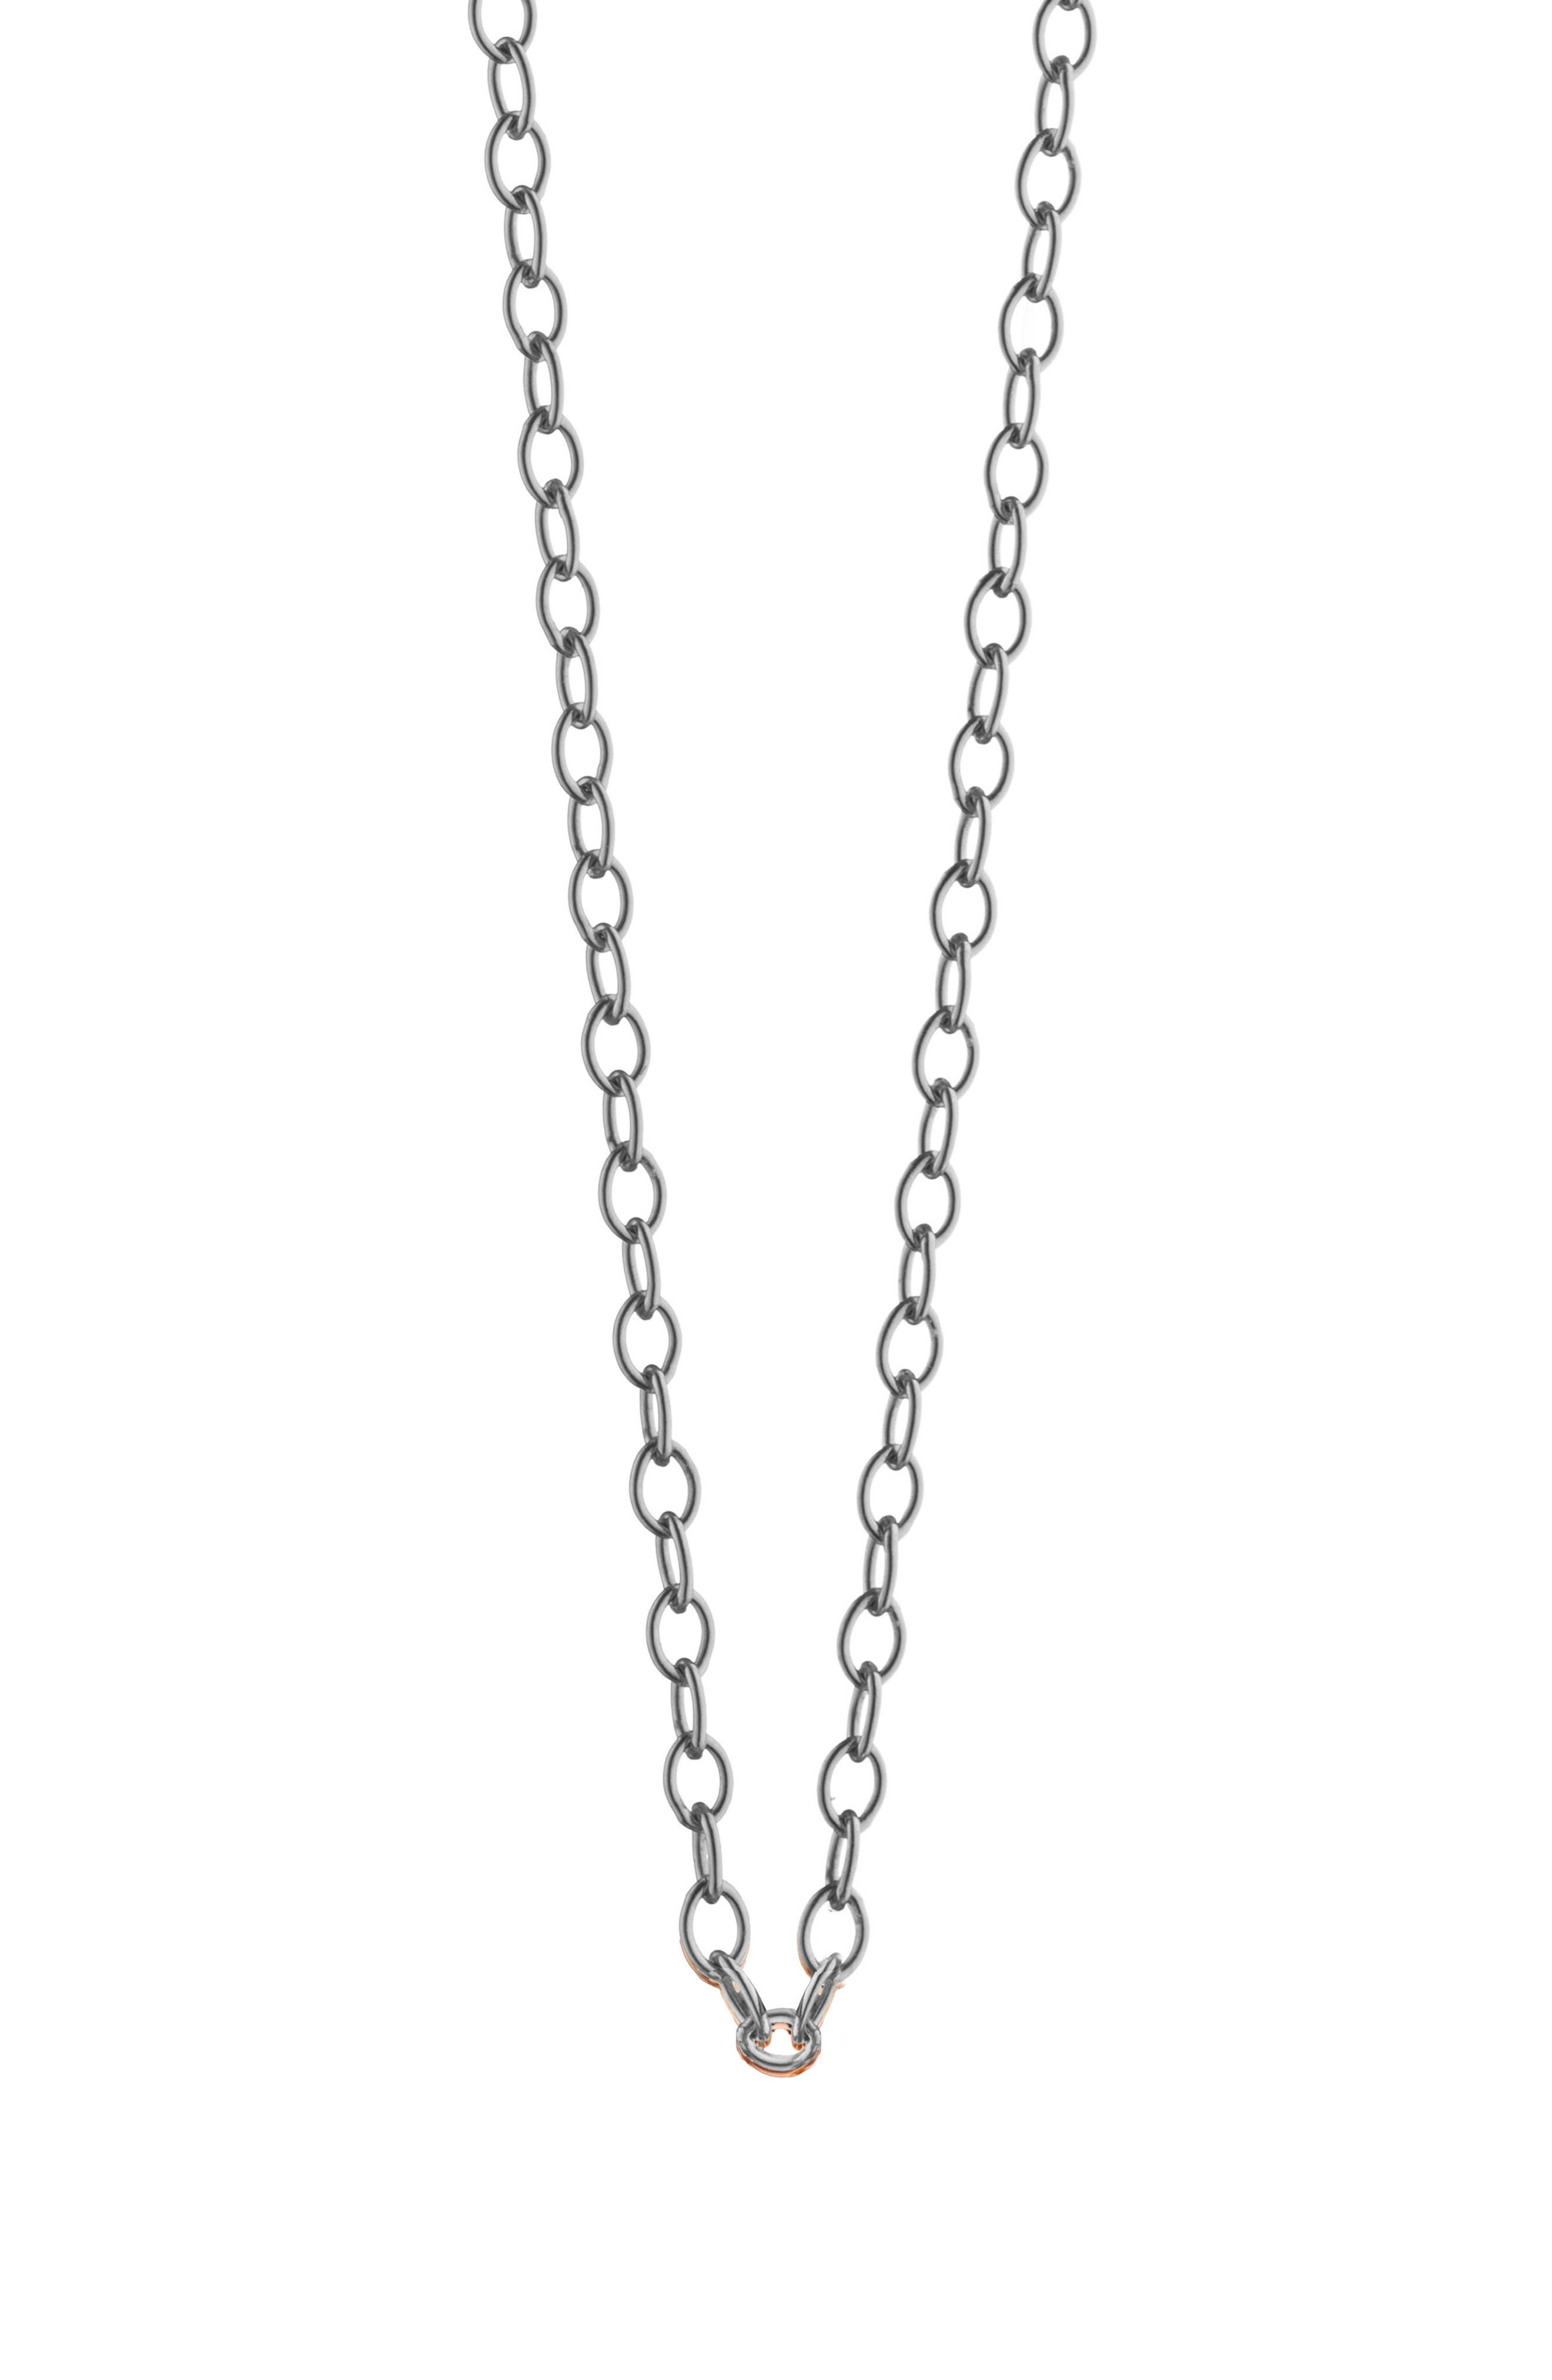 Oval Link 18K Gold Chain,                             Main thumbnail 1, color,                             18K WHITE GOLD